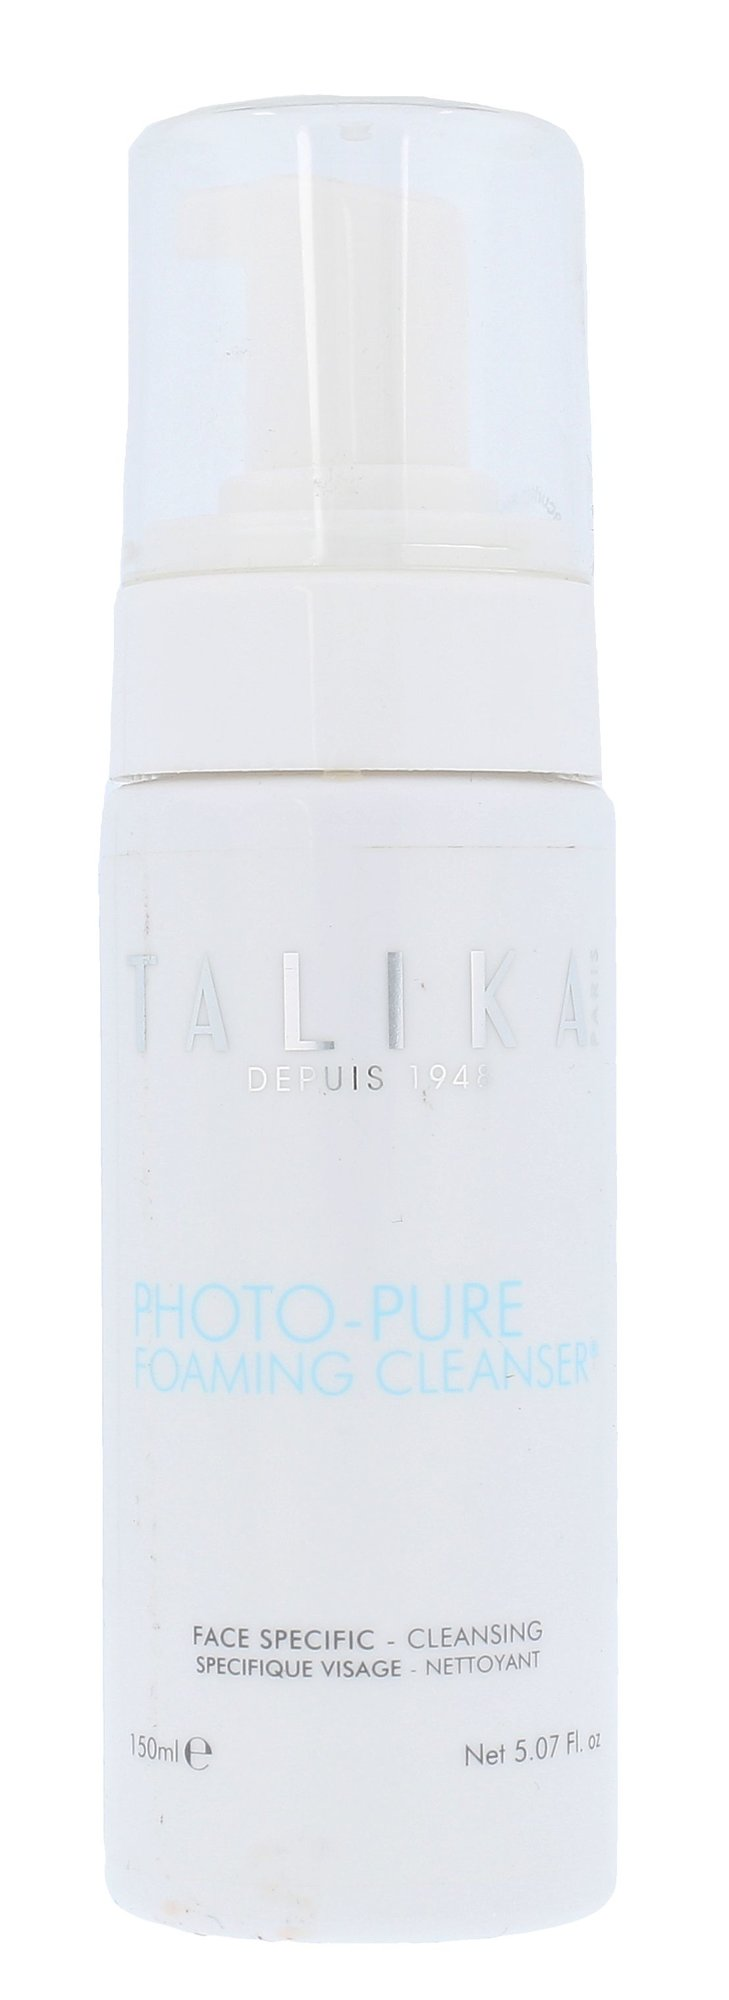 Talika Photo-Pure Foaming Cleanser Cosmetic 150ml